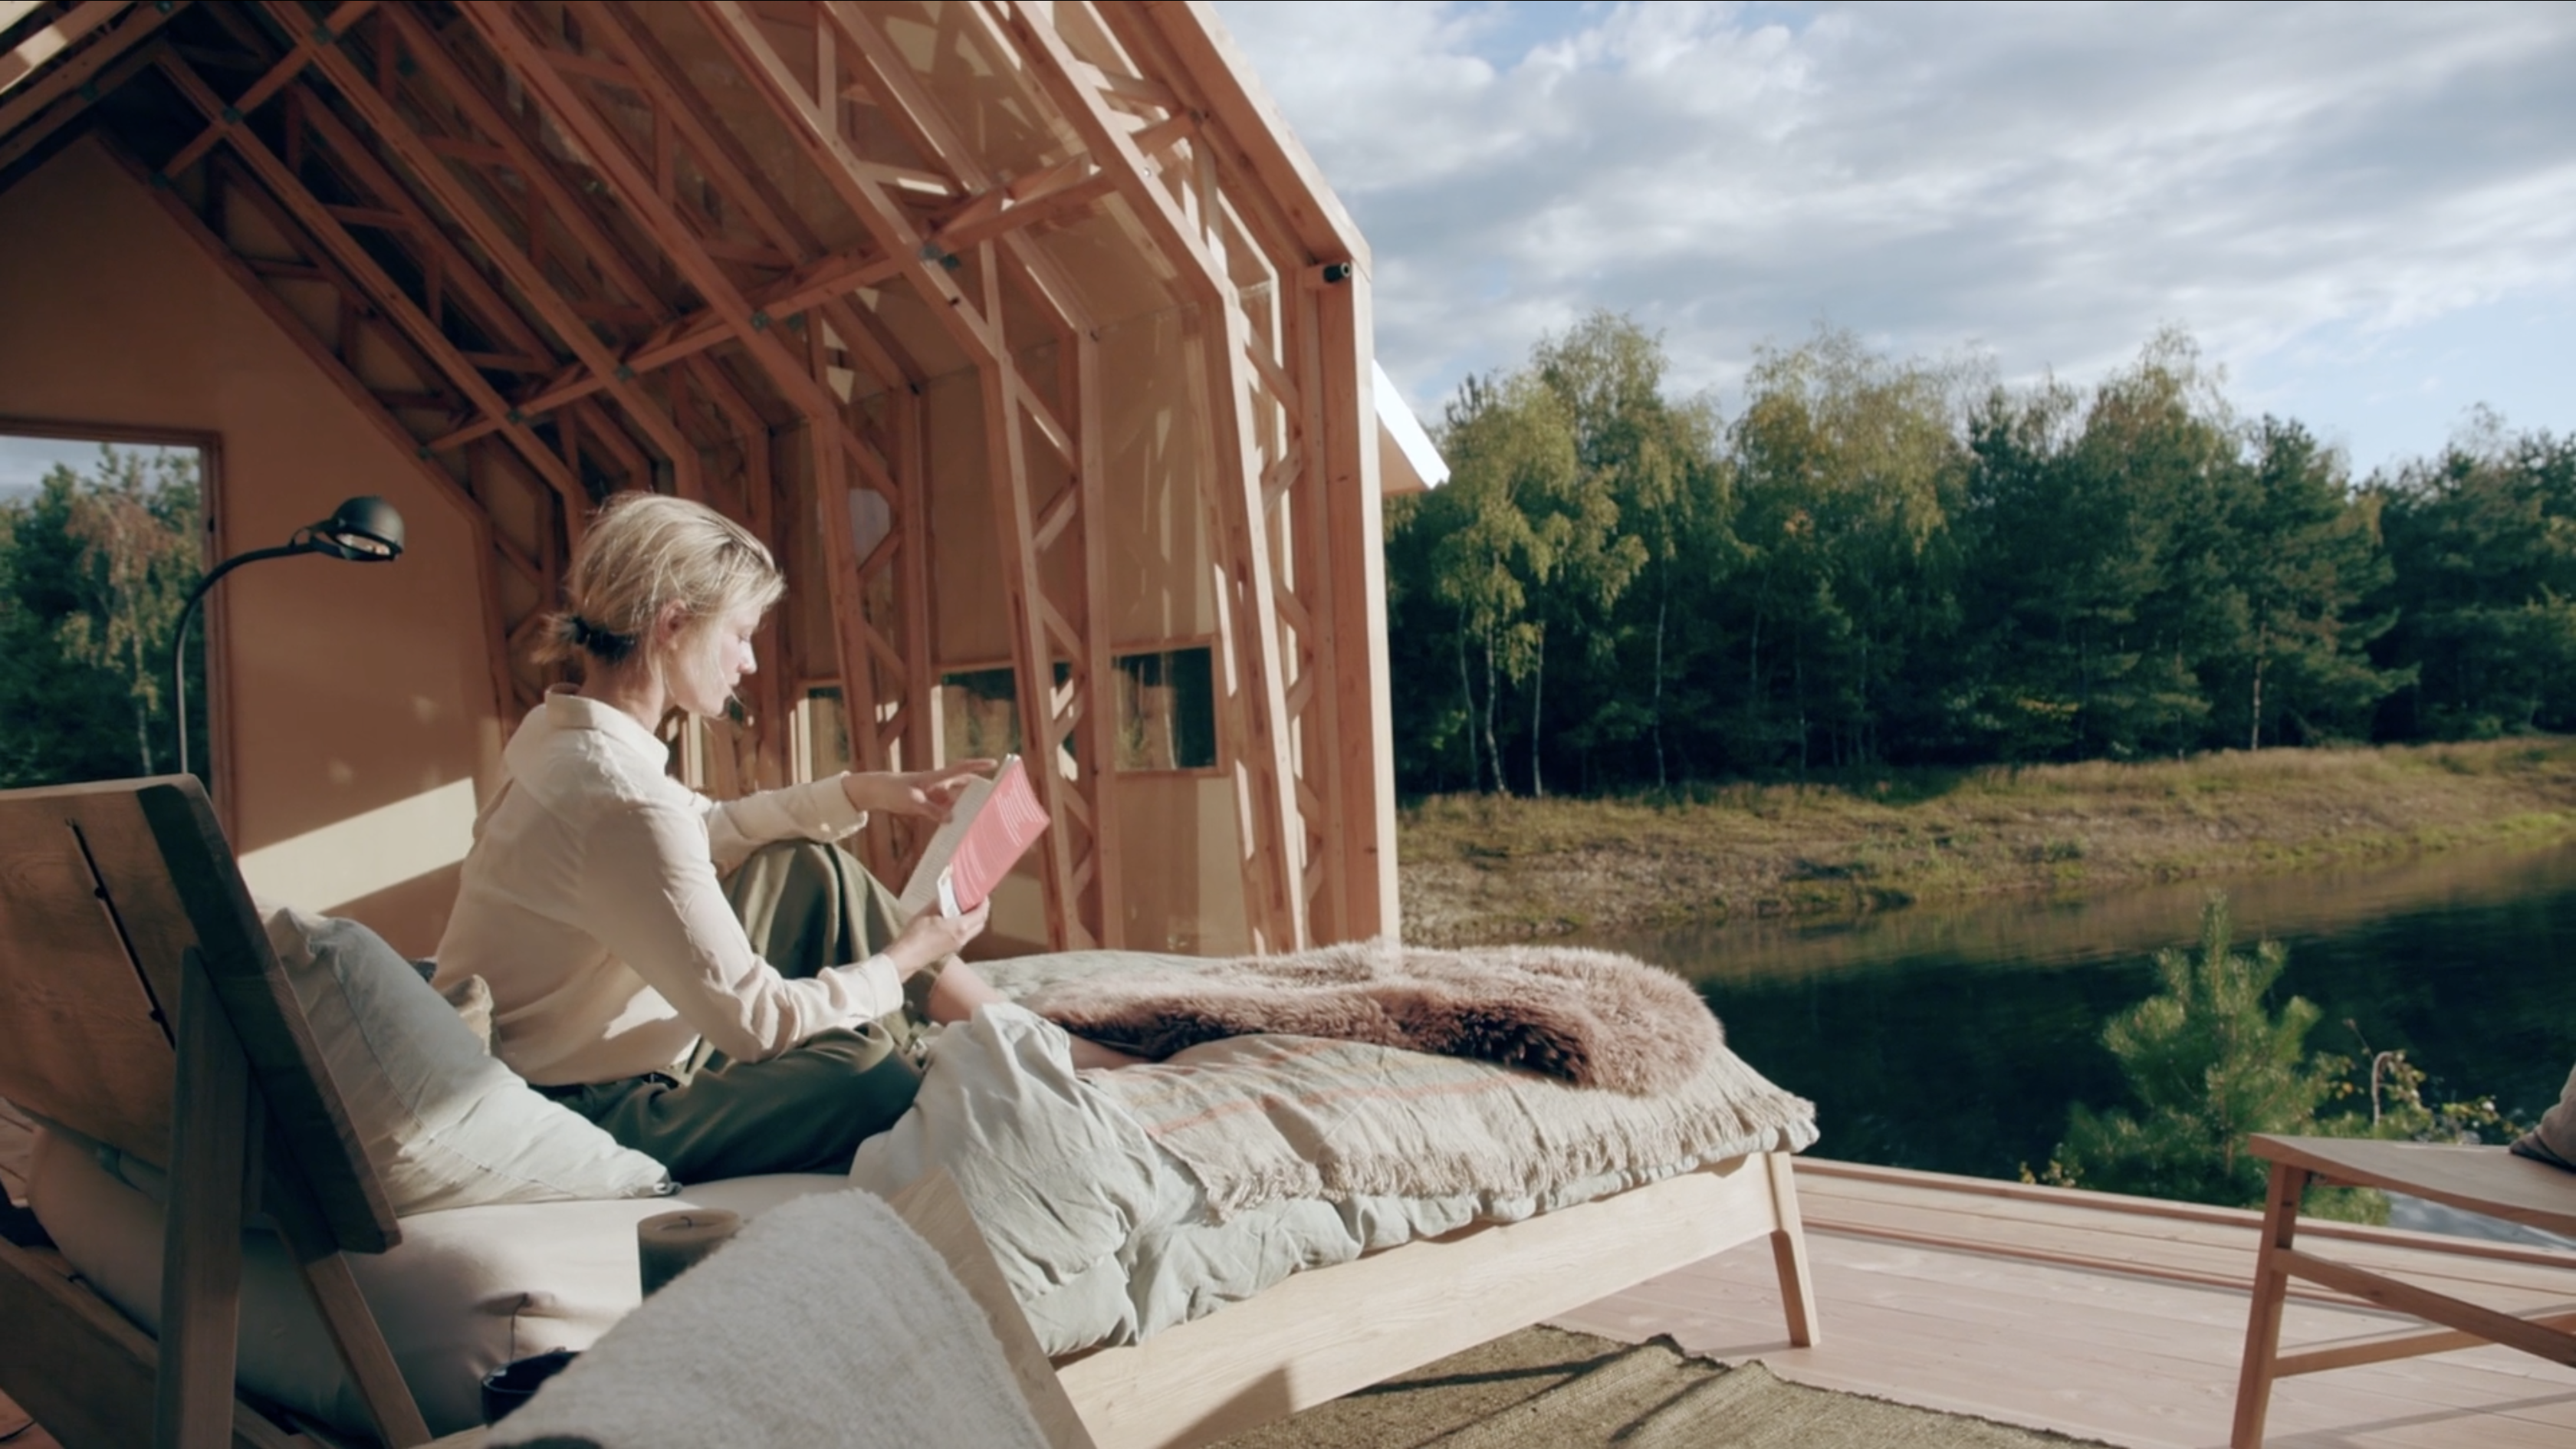 Still from Cabin ANNA Stay. It's a medium shot of the inside of ANNA STAY. The girl in the video is sitting on the bed, reading a book in the sunlight, 'outside'.